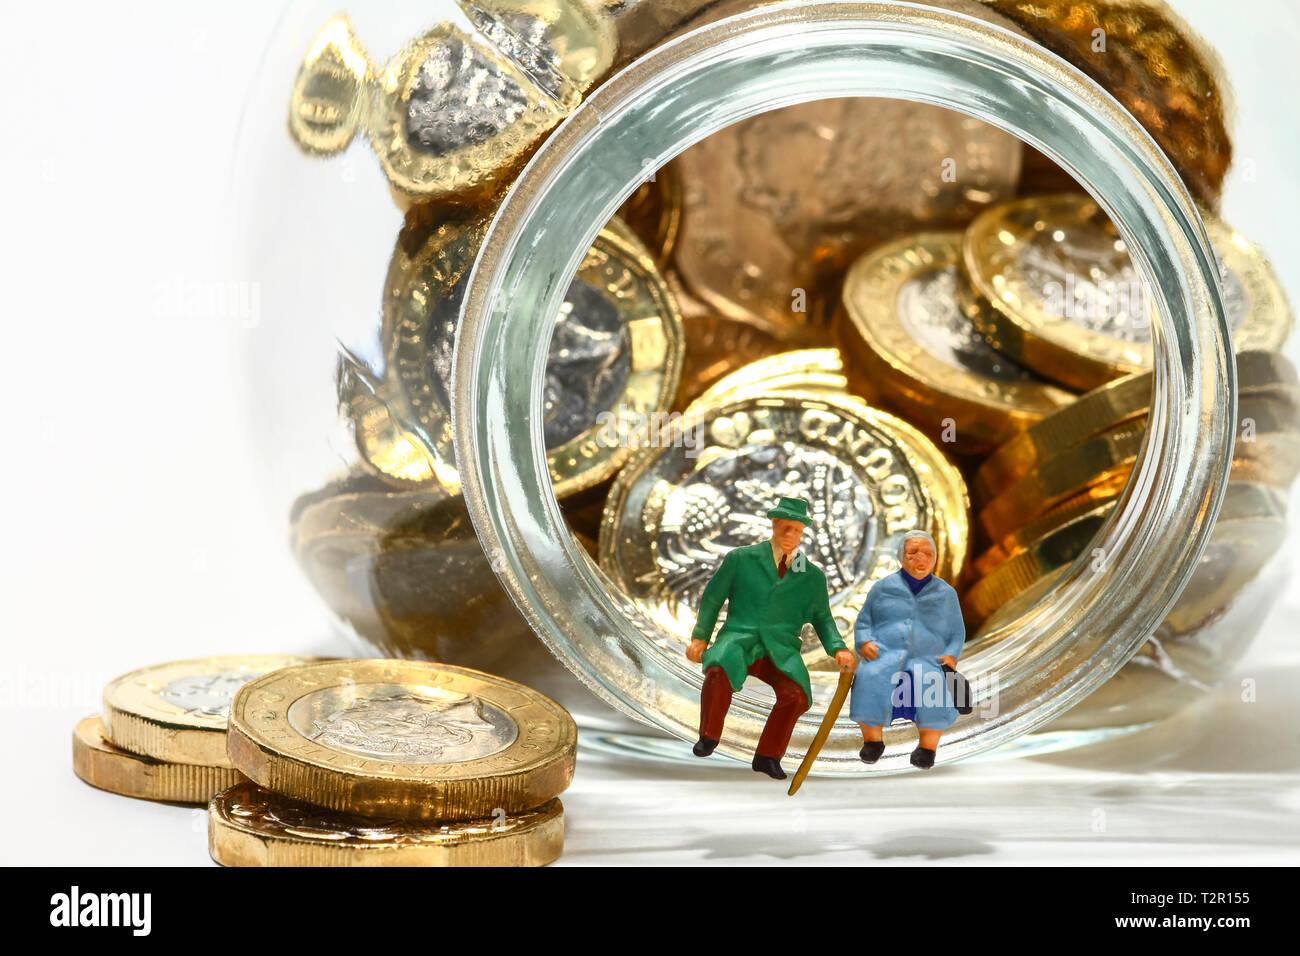 Conceptual diorama image of elderly miniature figures sat on the rim of a glass jar full of pound coins - Stock Image